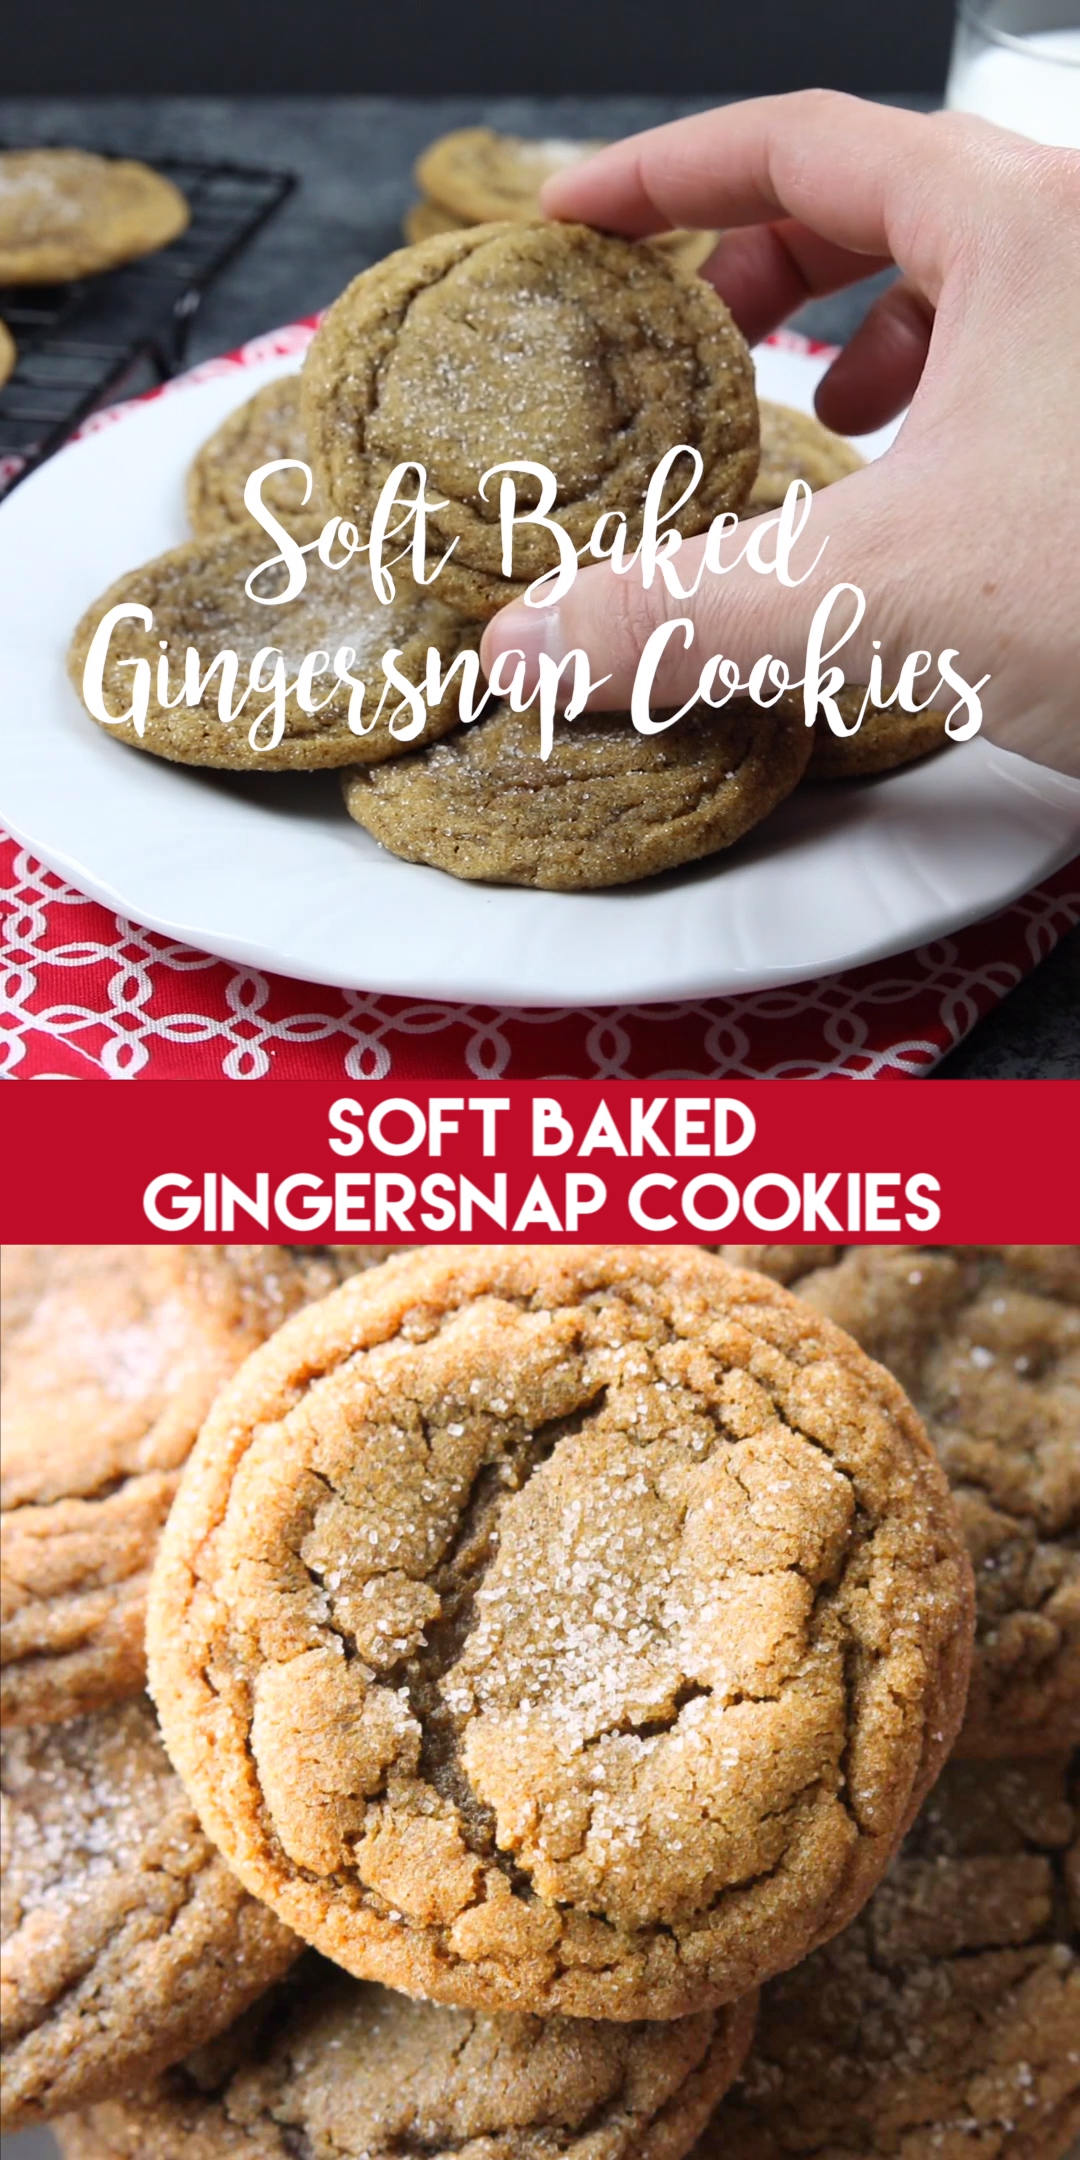 Soft Baked Gingersnap Cookies